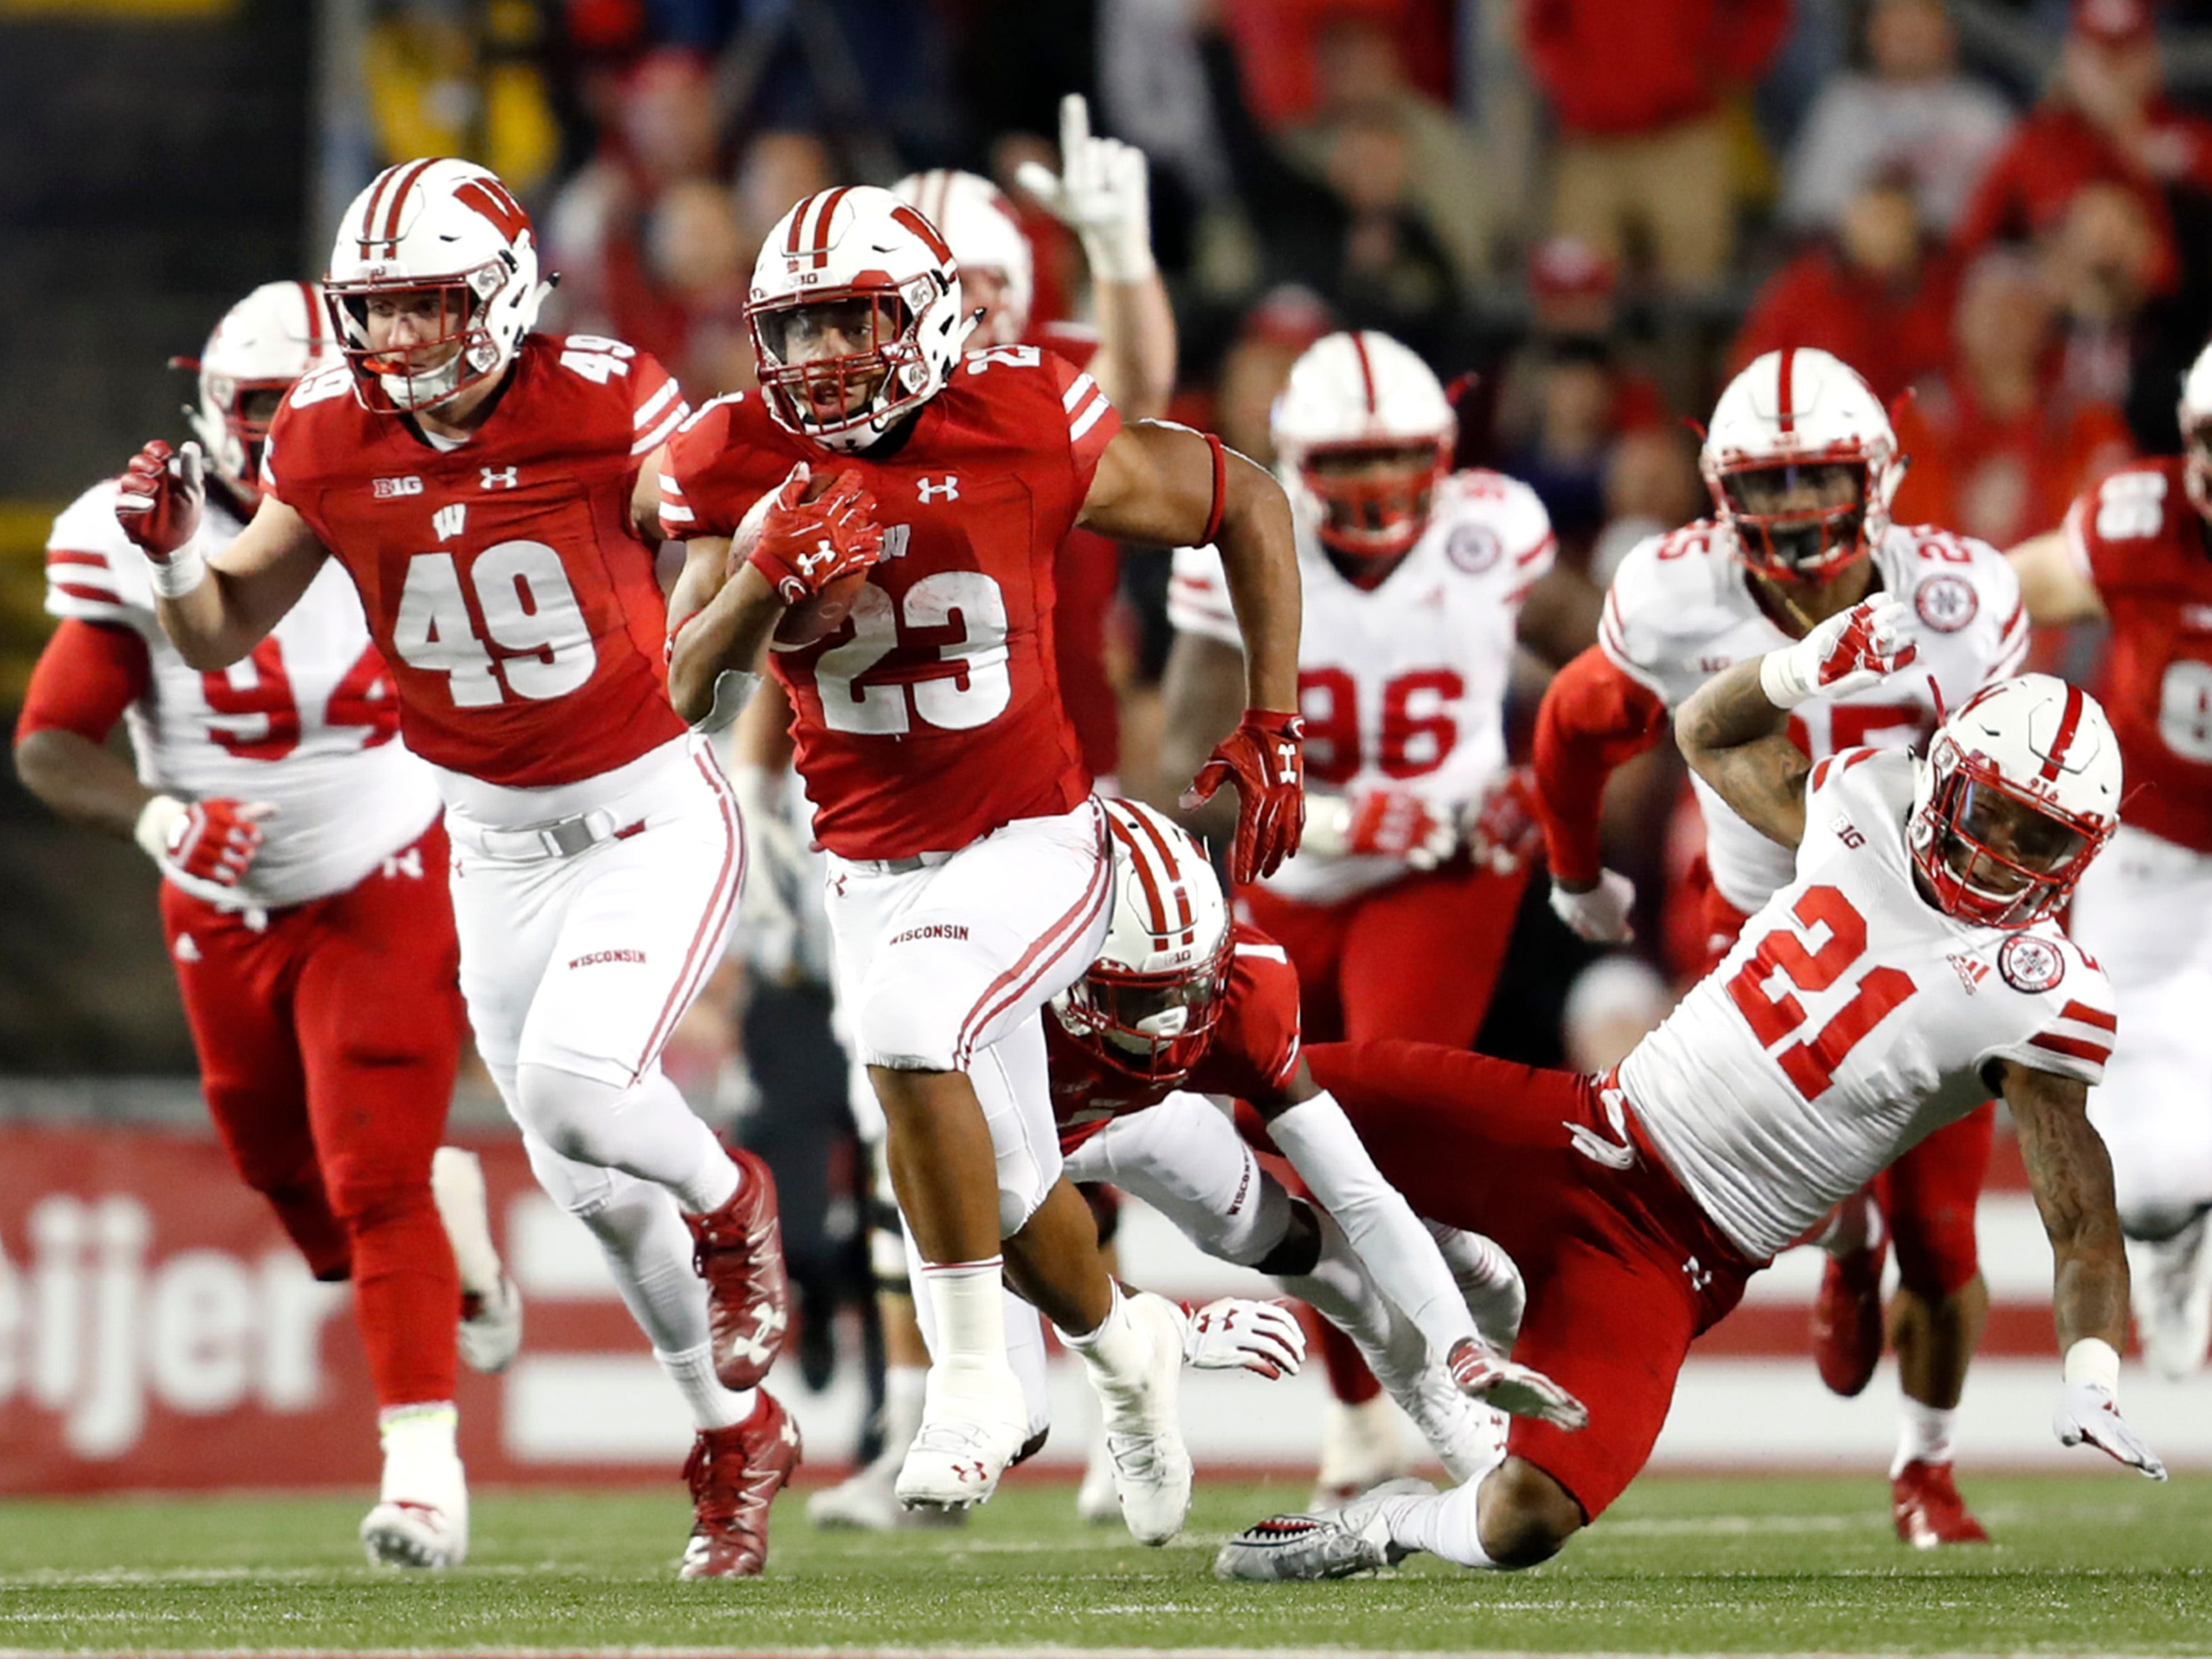 Wisconsin running back Jonathan Taylor is off to the races as he leaves Nebraska's defense in his wake on an 88-yard touchdown run in the fourth quarter Saturday night.